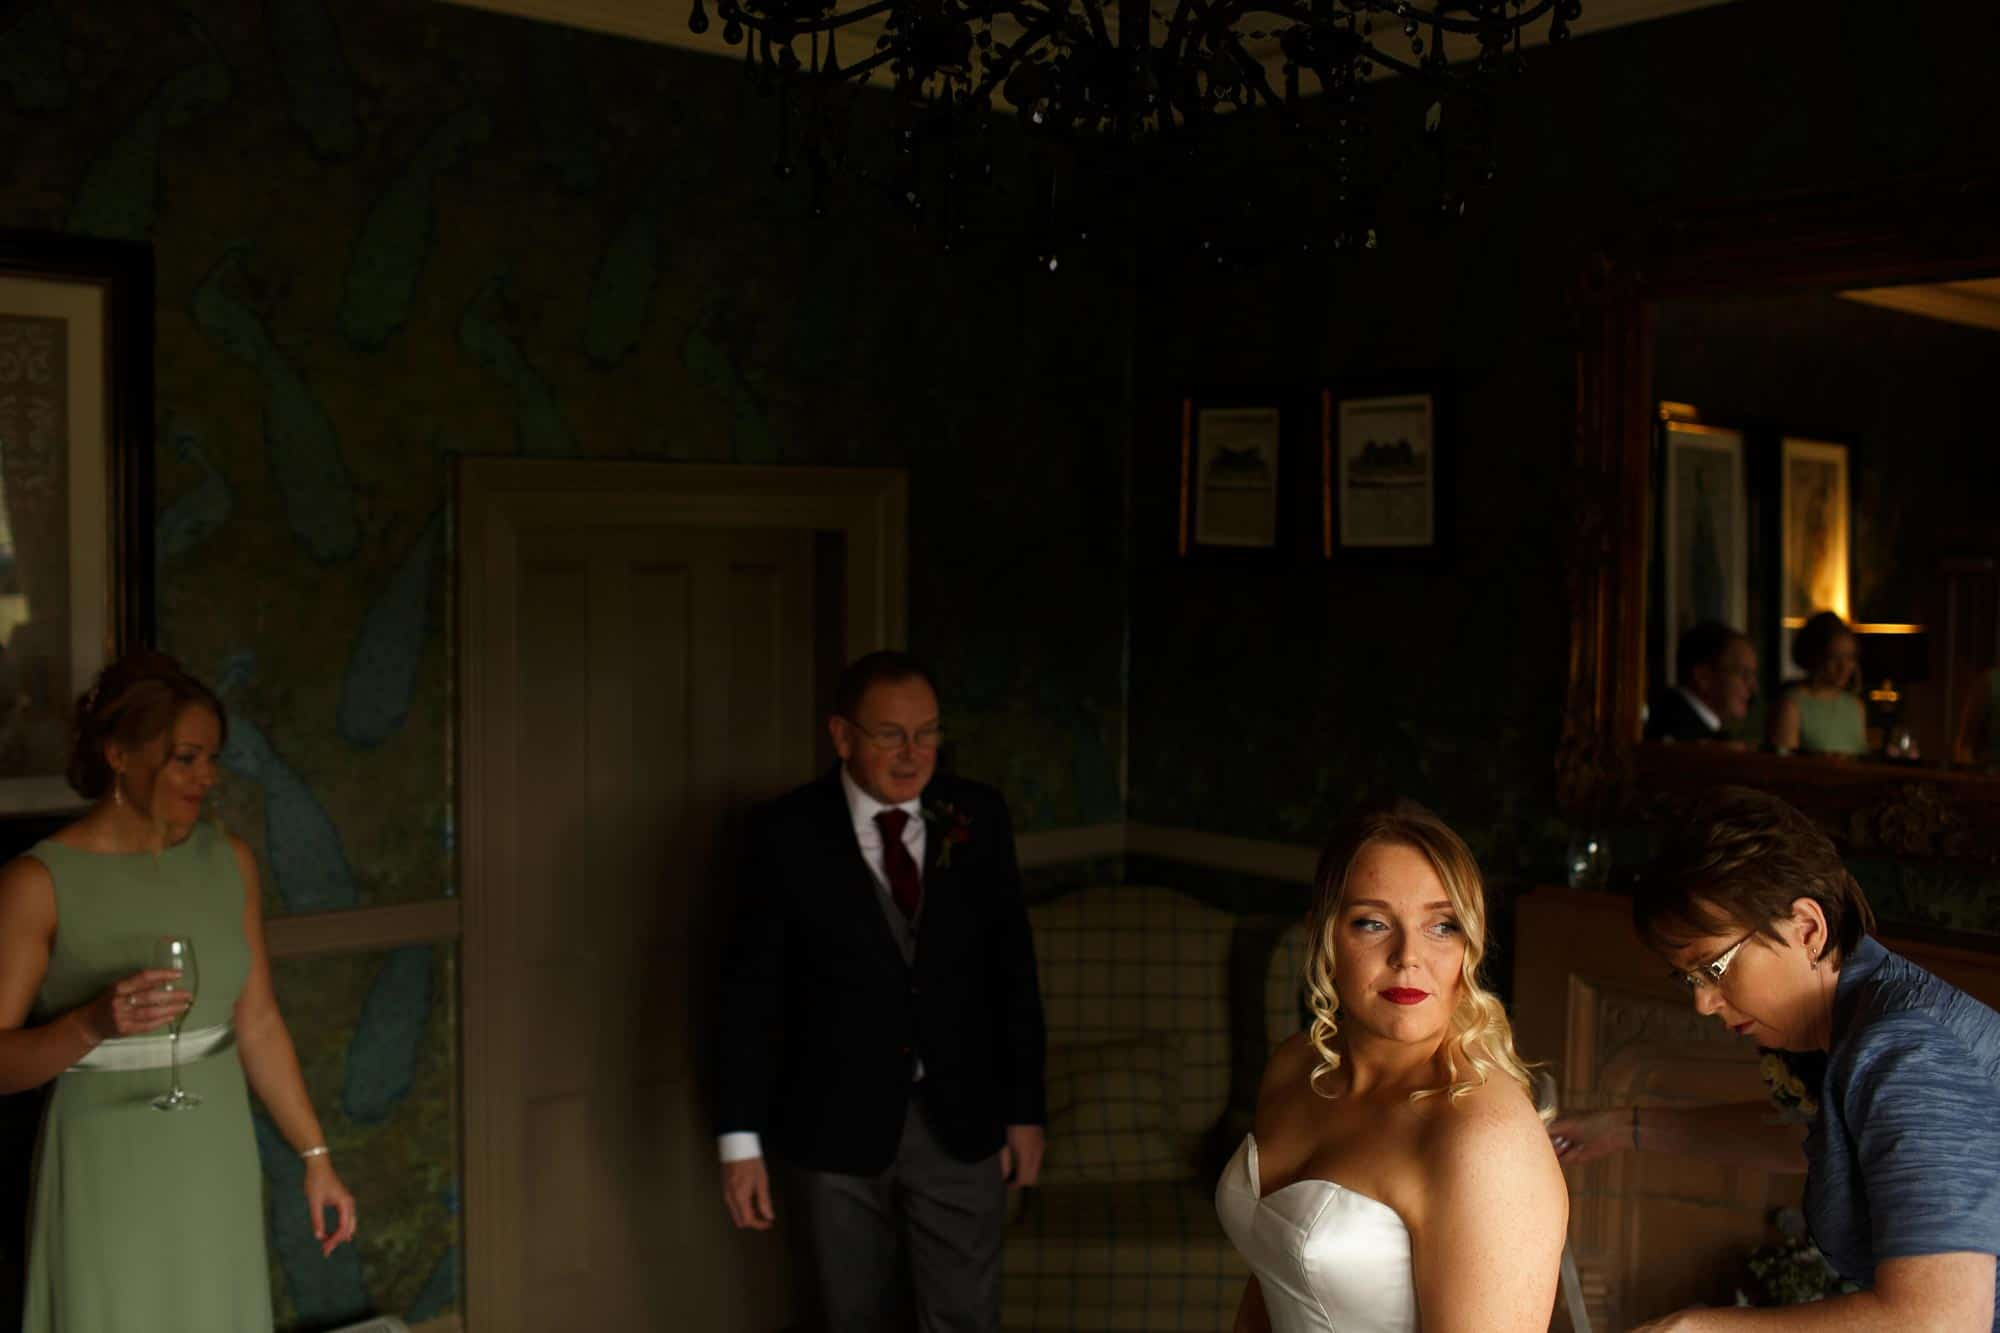 Bride getting into her dress in the bridal suite at Mitton Hall whilst her family watch